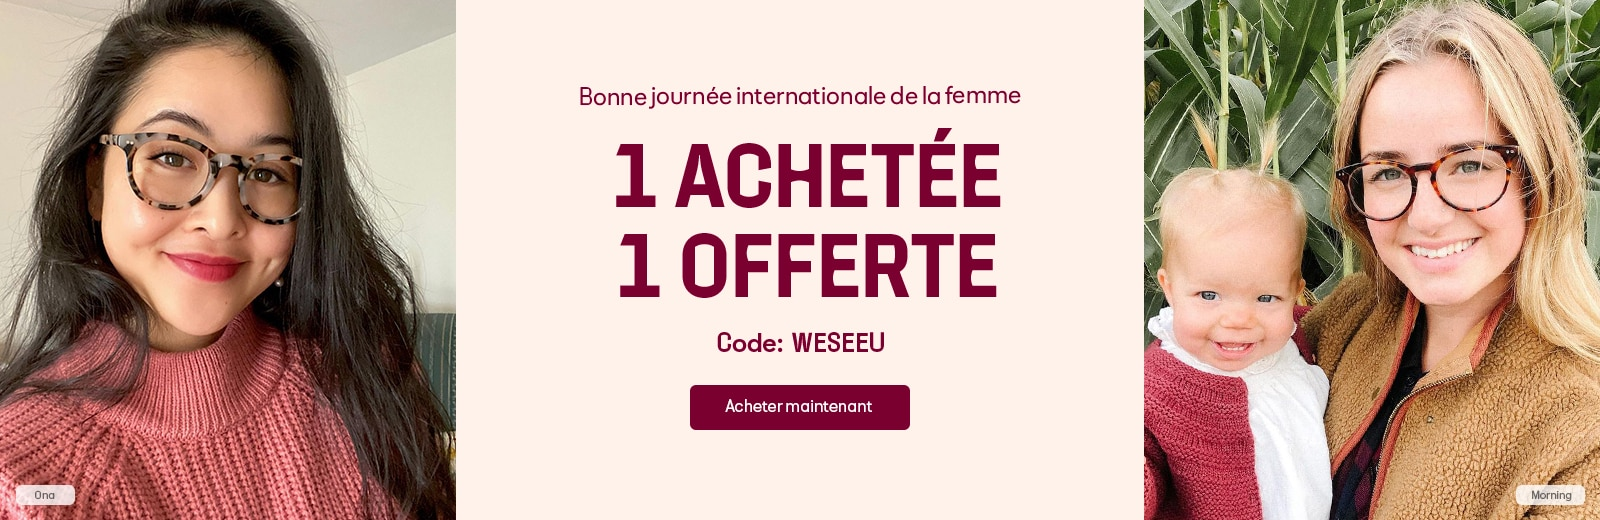 Happy International Women's Day  BUY 1 GET 1 FREE  CODE: WESEEU